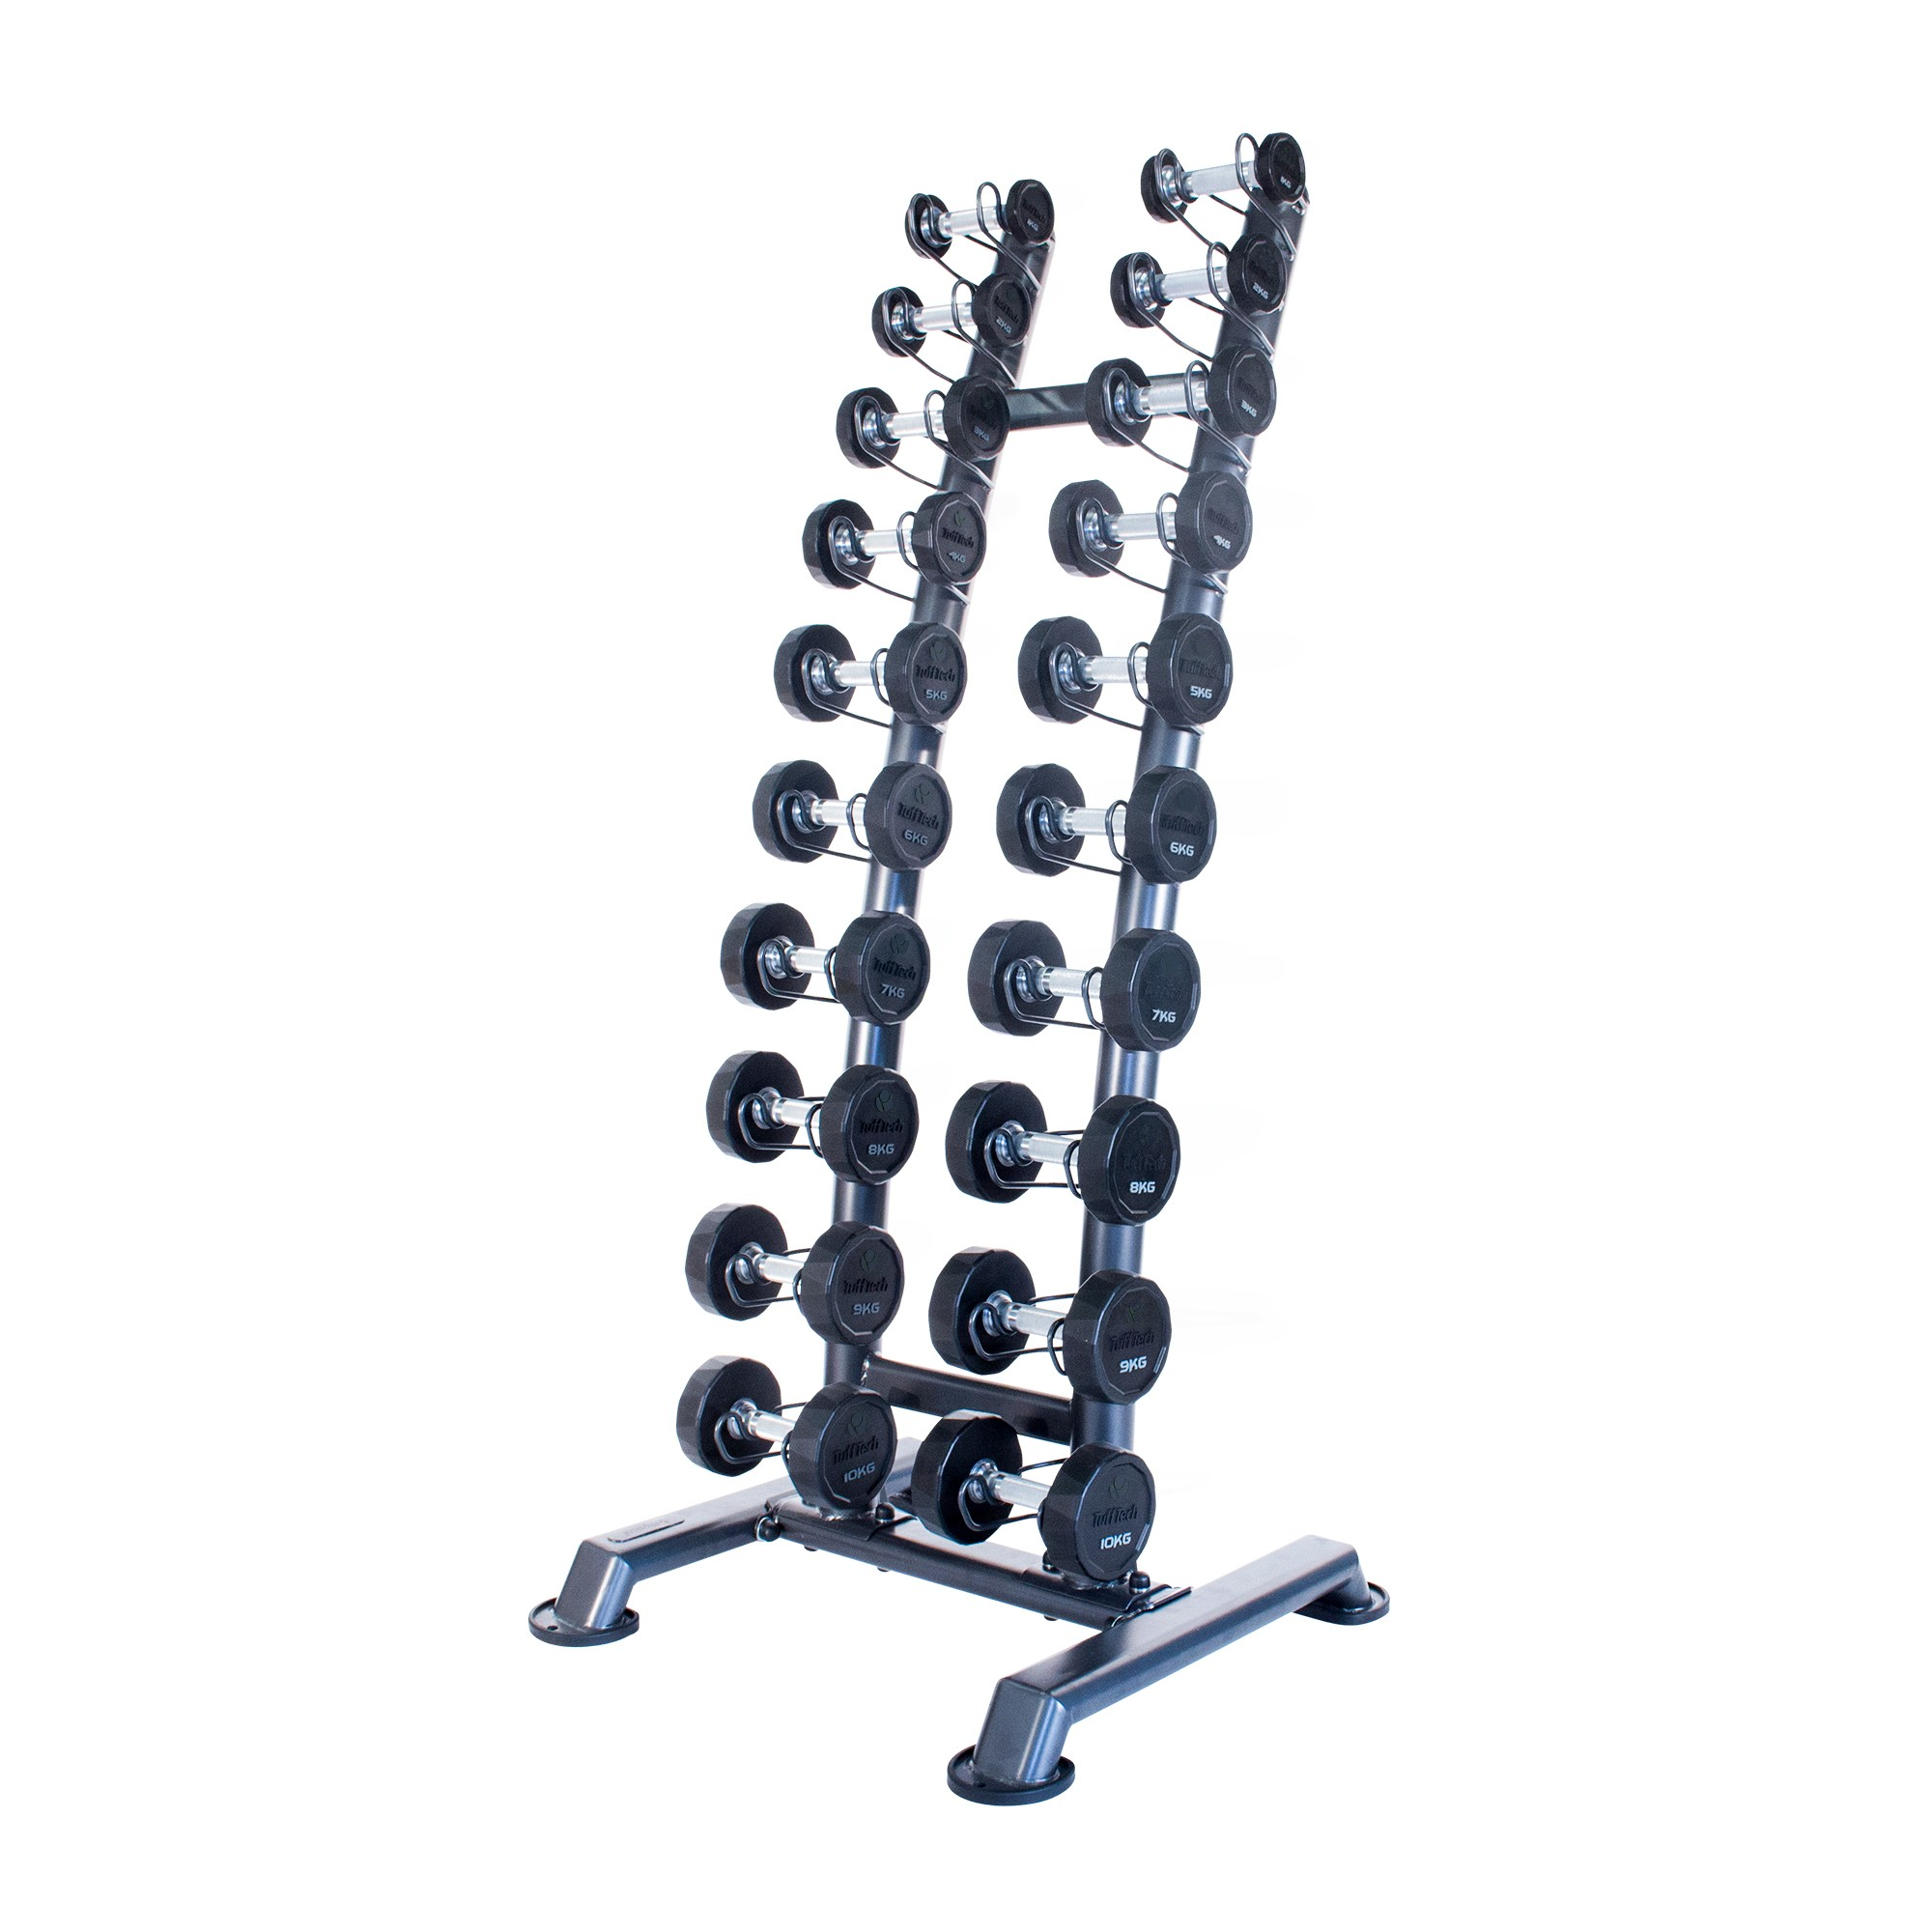 Https Strength 2018 11 27 Daily 05 Vipr 8kg Rubber Dumbbell Sets With Upright Racks 22b